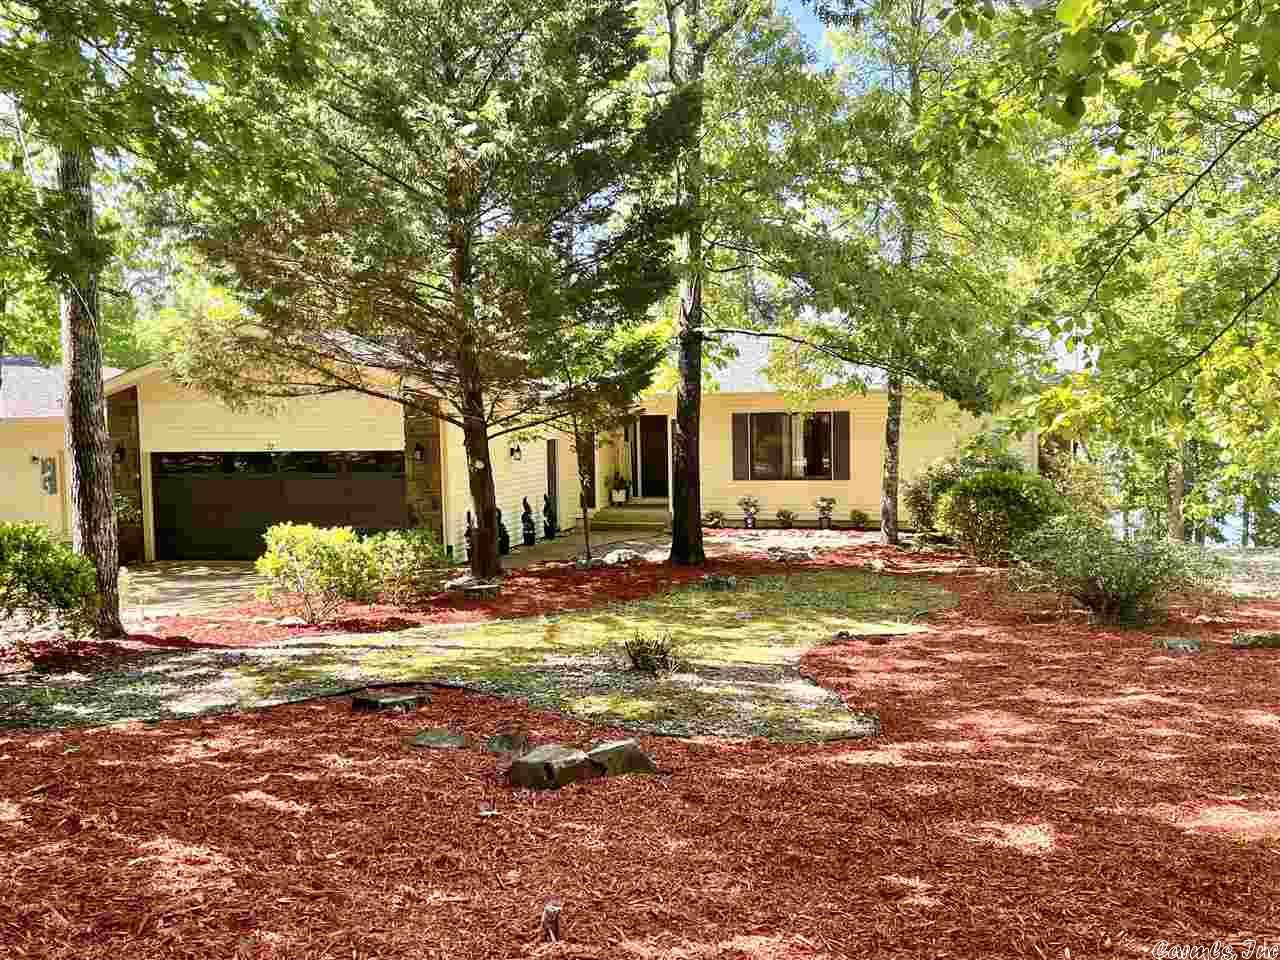 22 Baeza Way, Hot Springs Vill., AR 71909